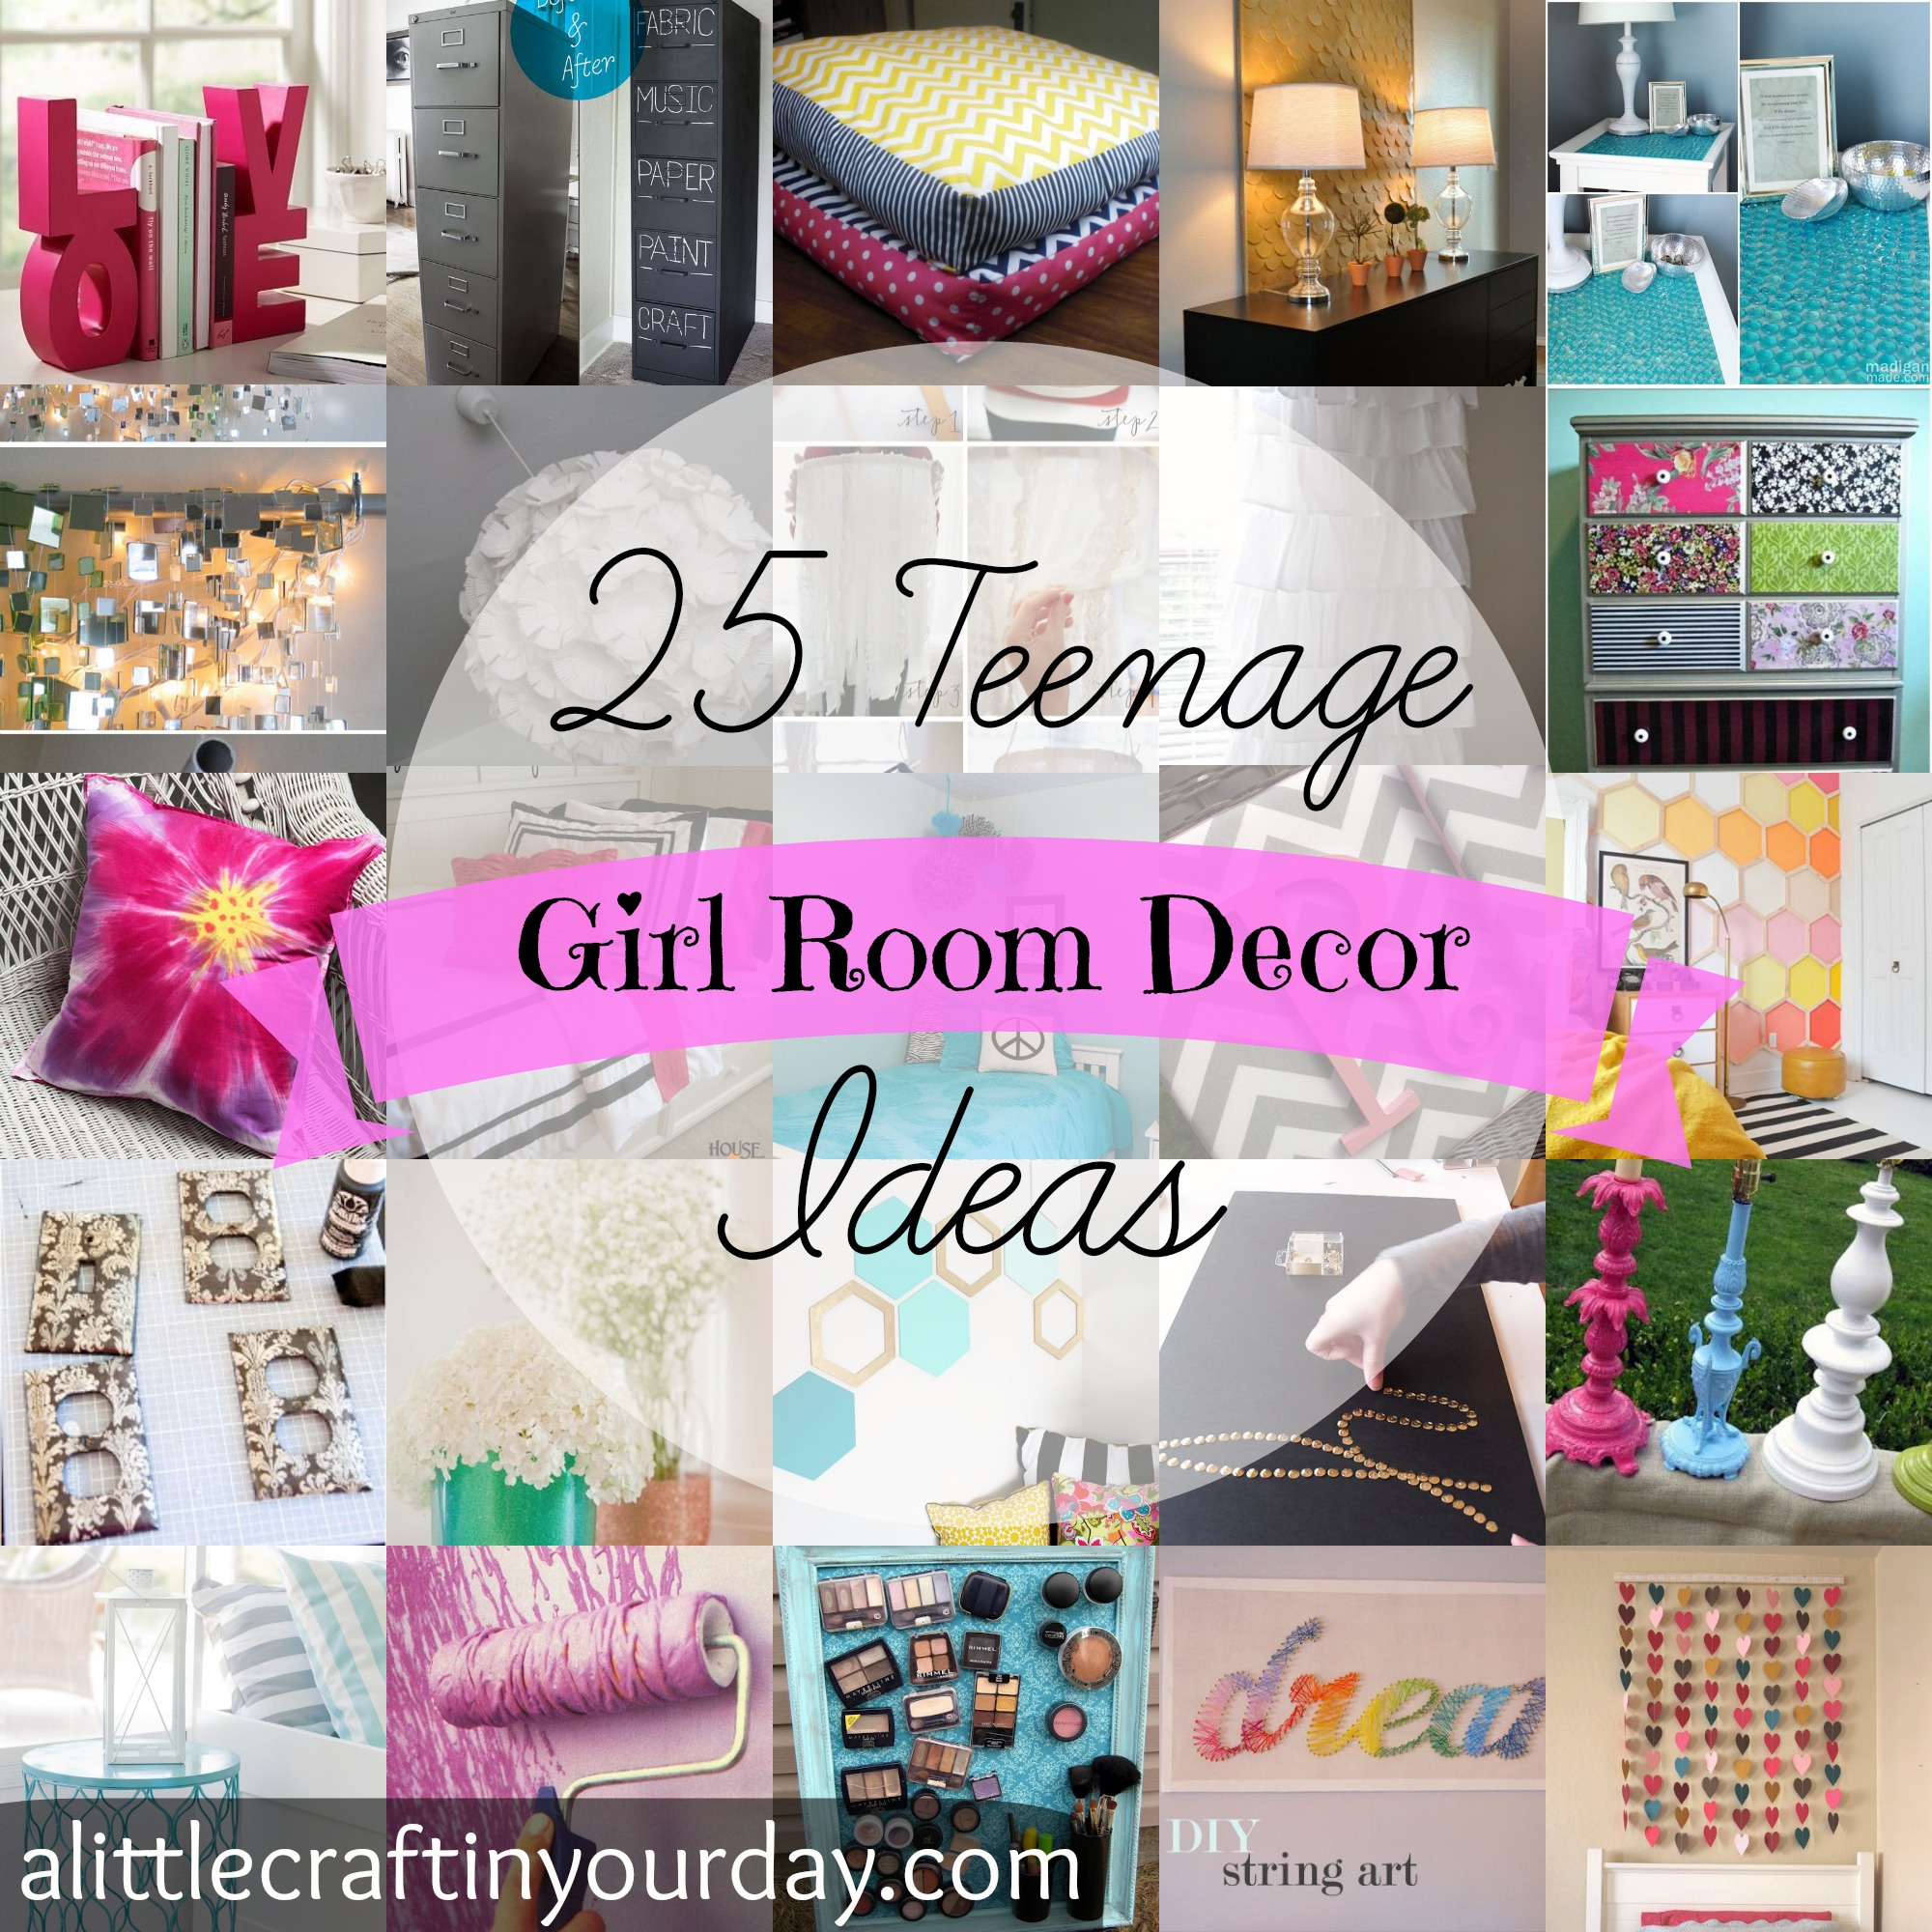 Decorating Paper Crafts For Home Decoration Interior Room: 12 DIY Spring Room Decor Ideas